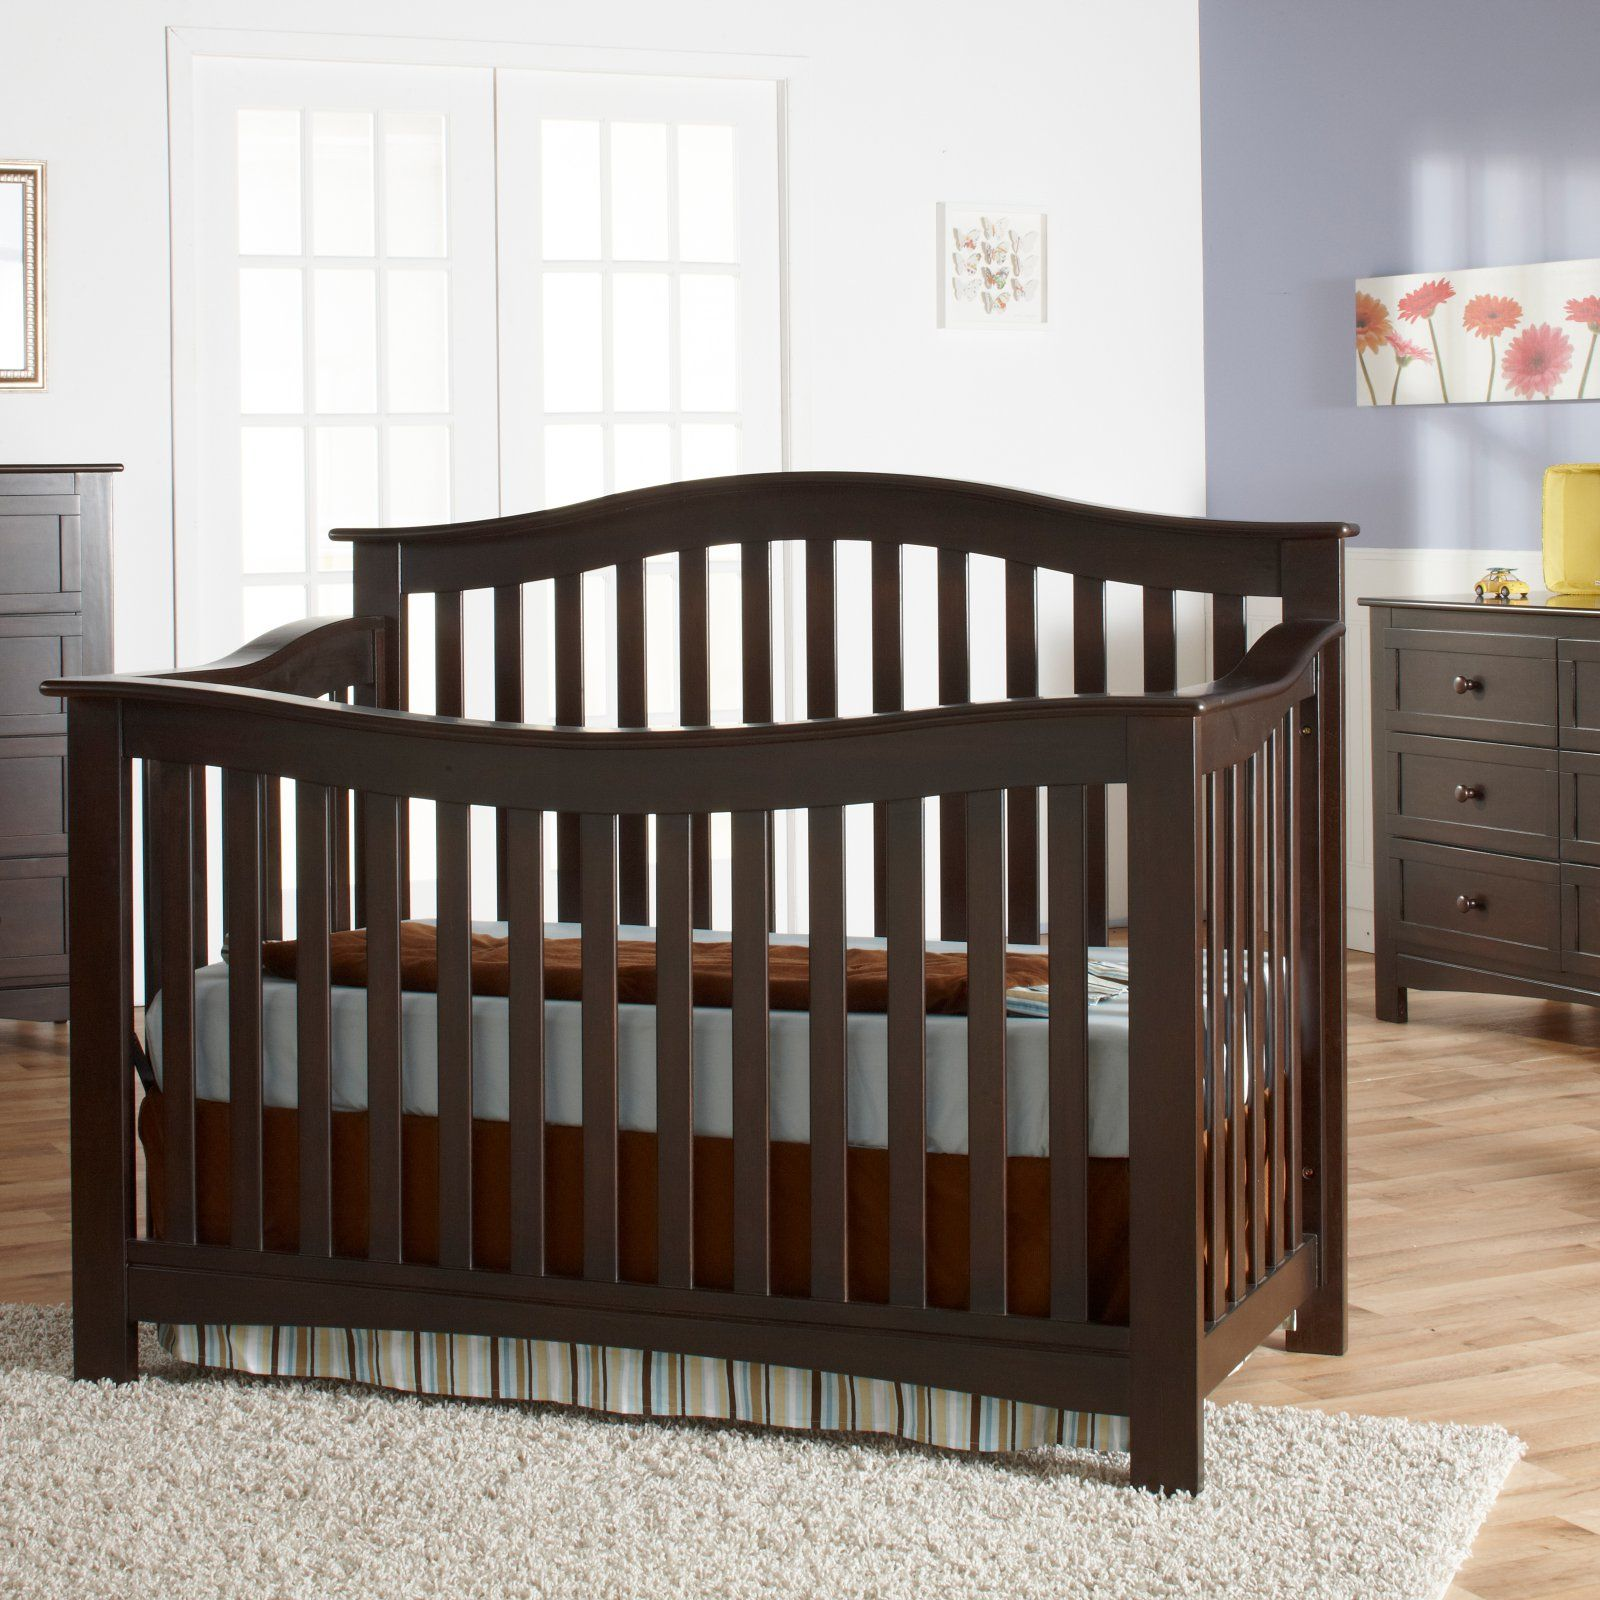 Pali Designs Bolzano Forever Crib In 2019 Products Cribs